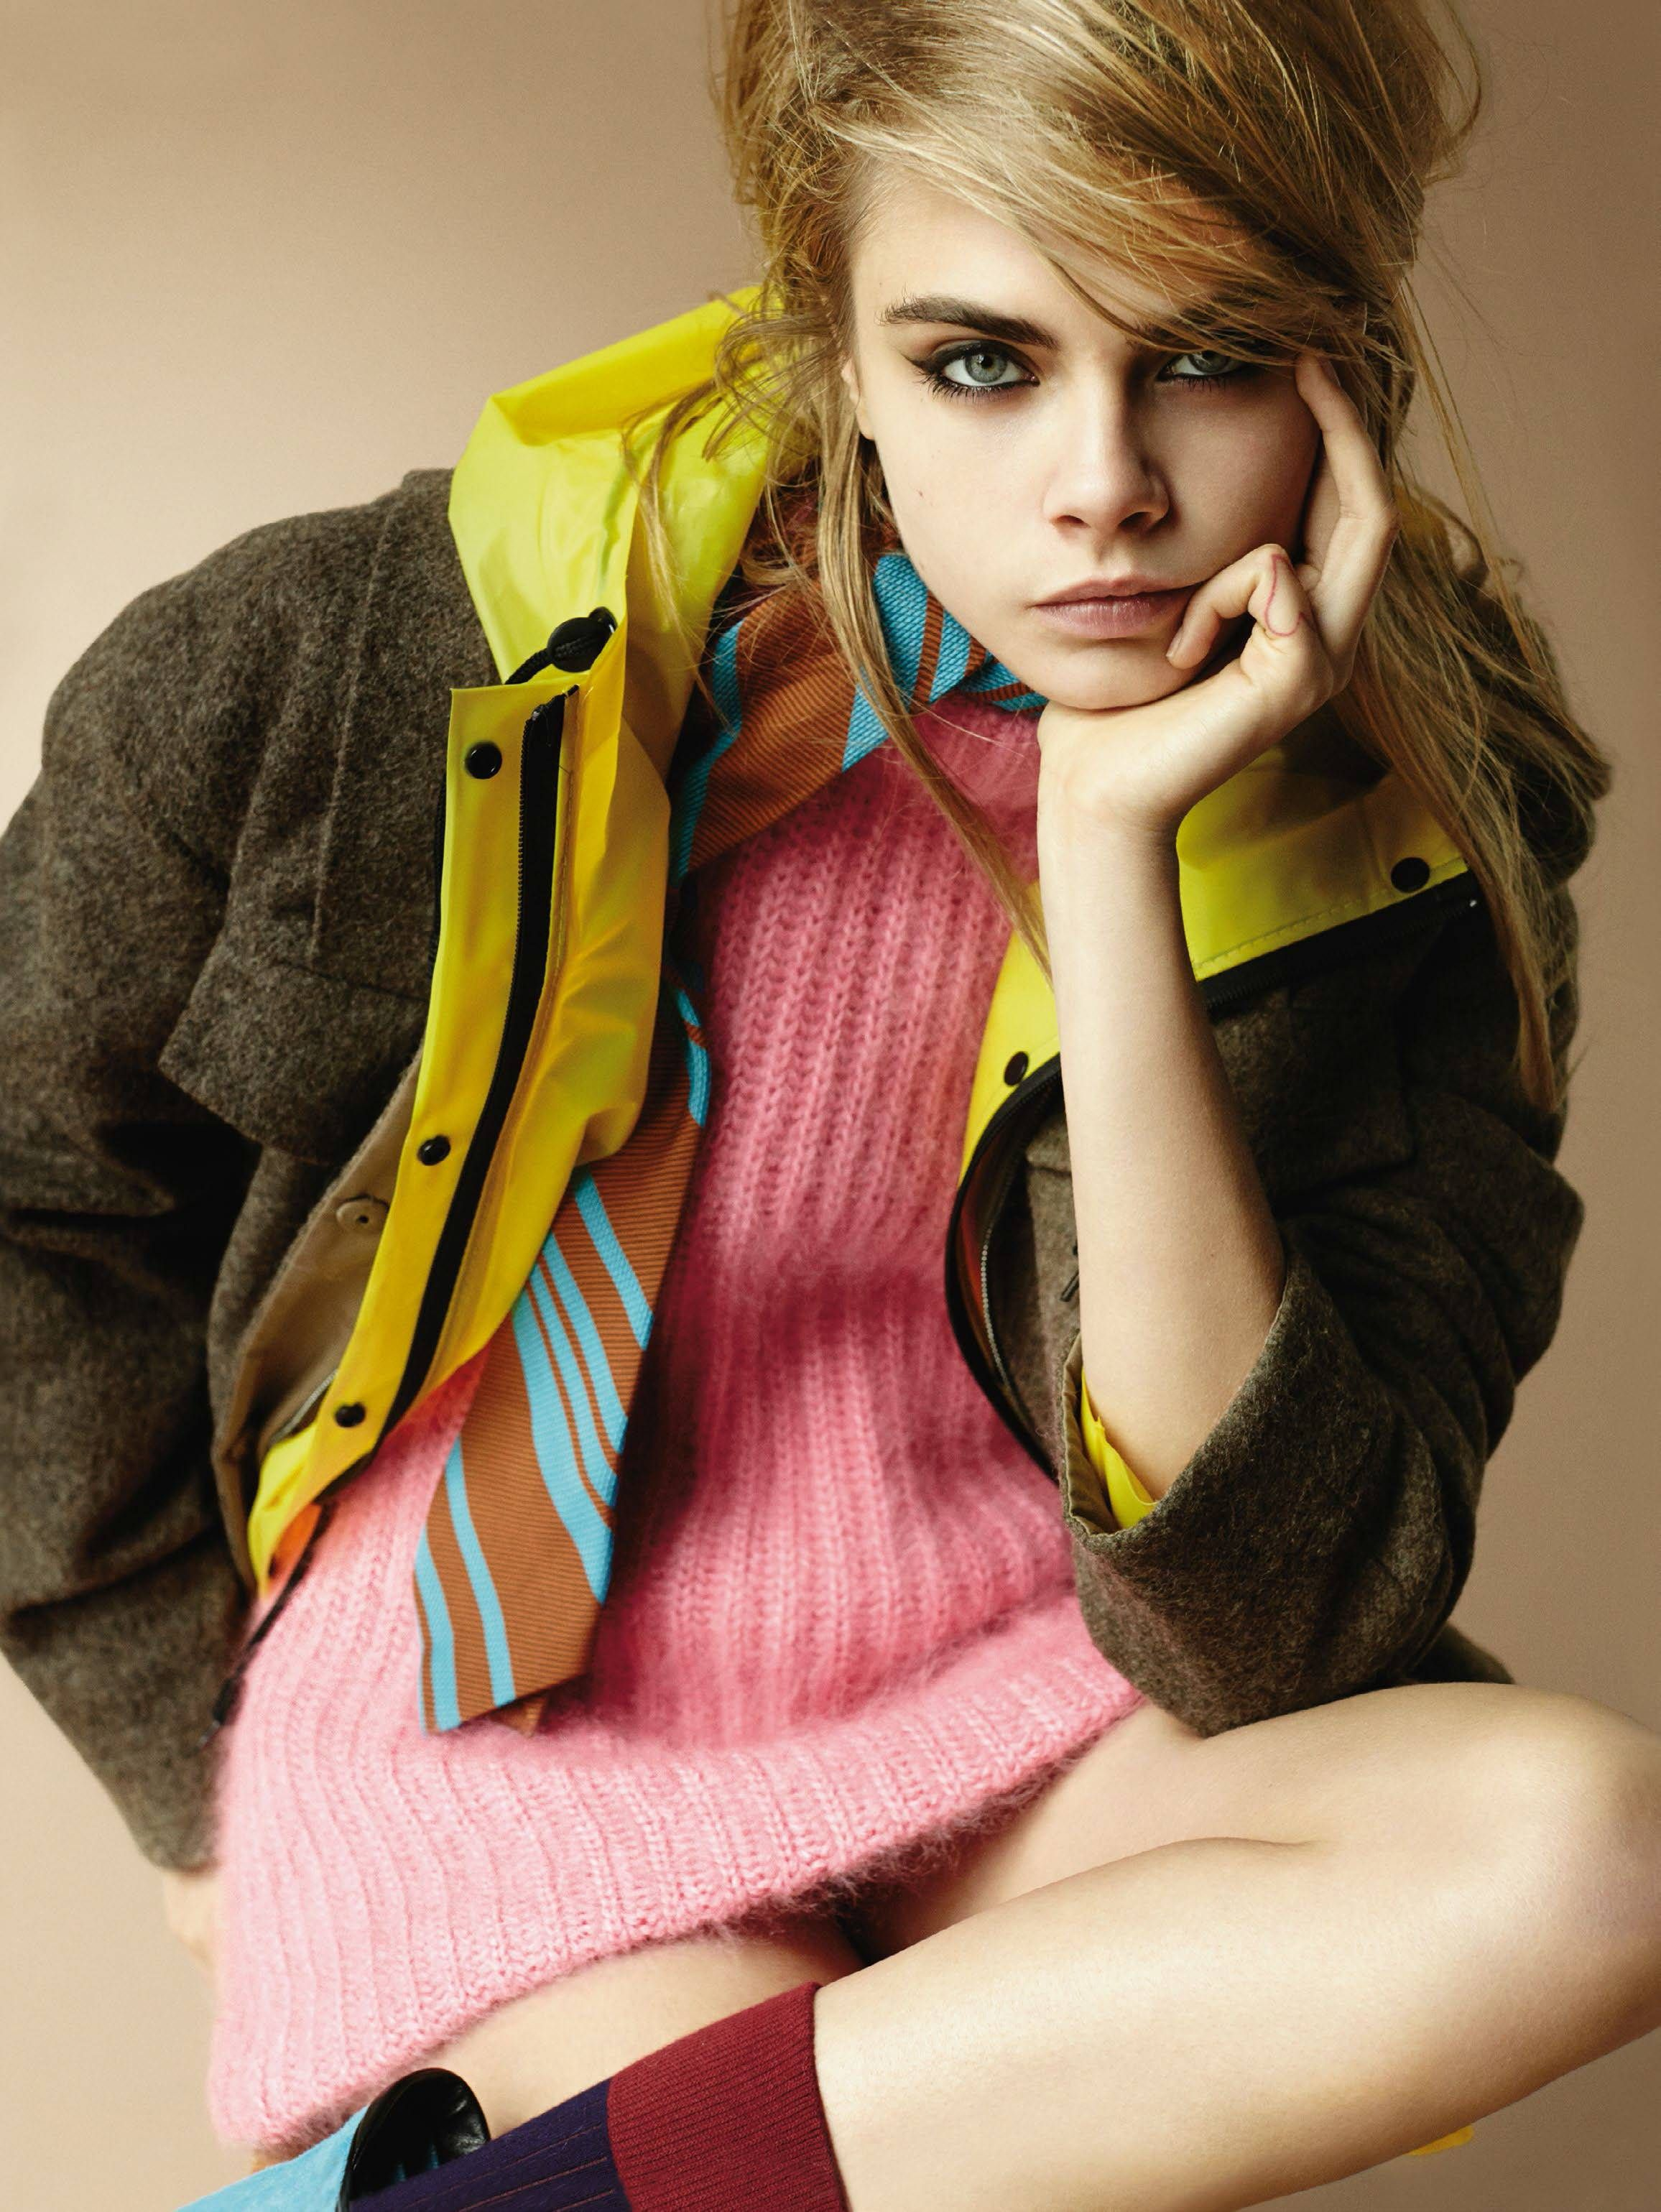 Forum on this topic: Tom Busby, cara-delevingne-born-1992/